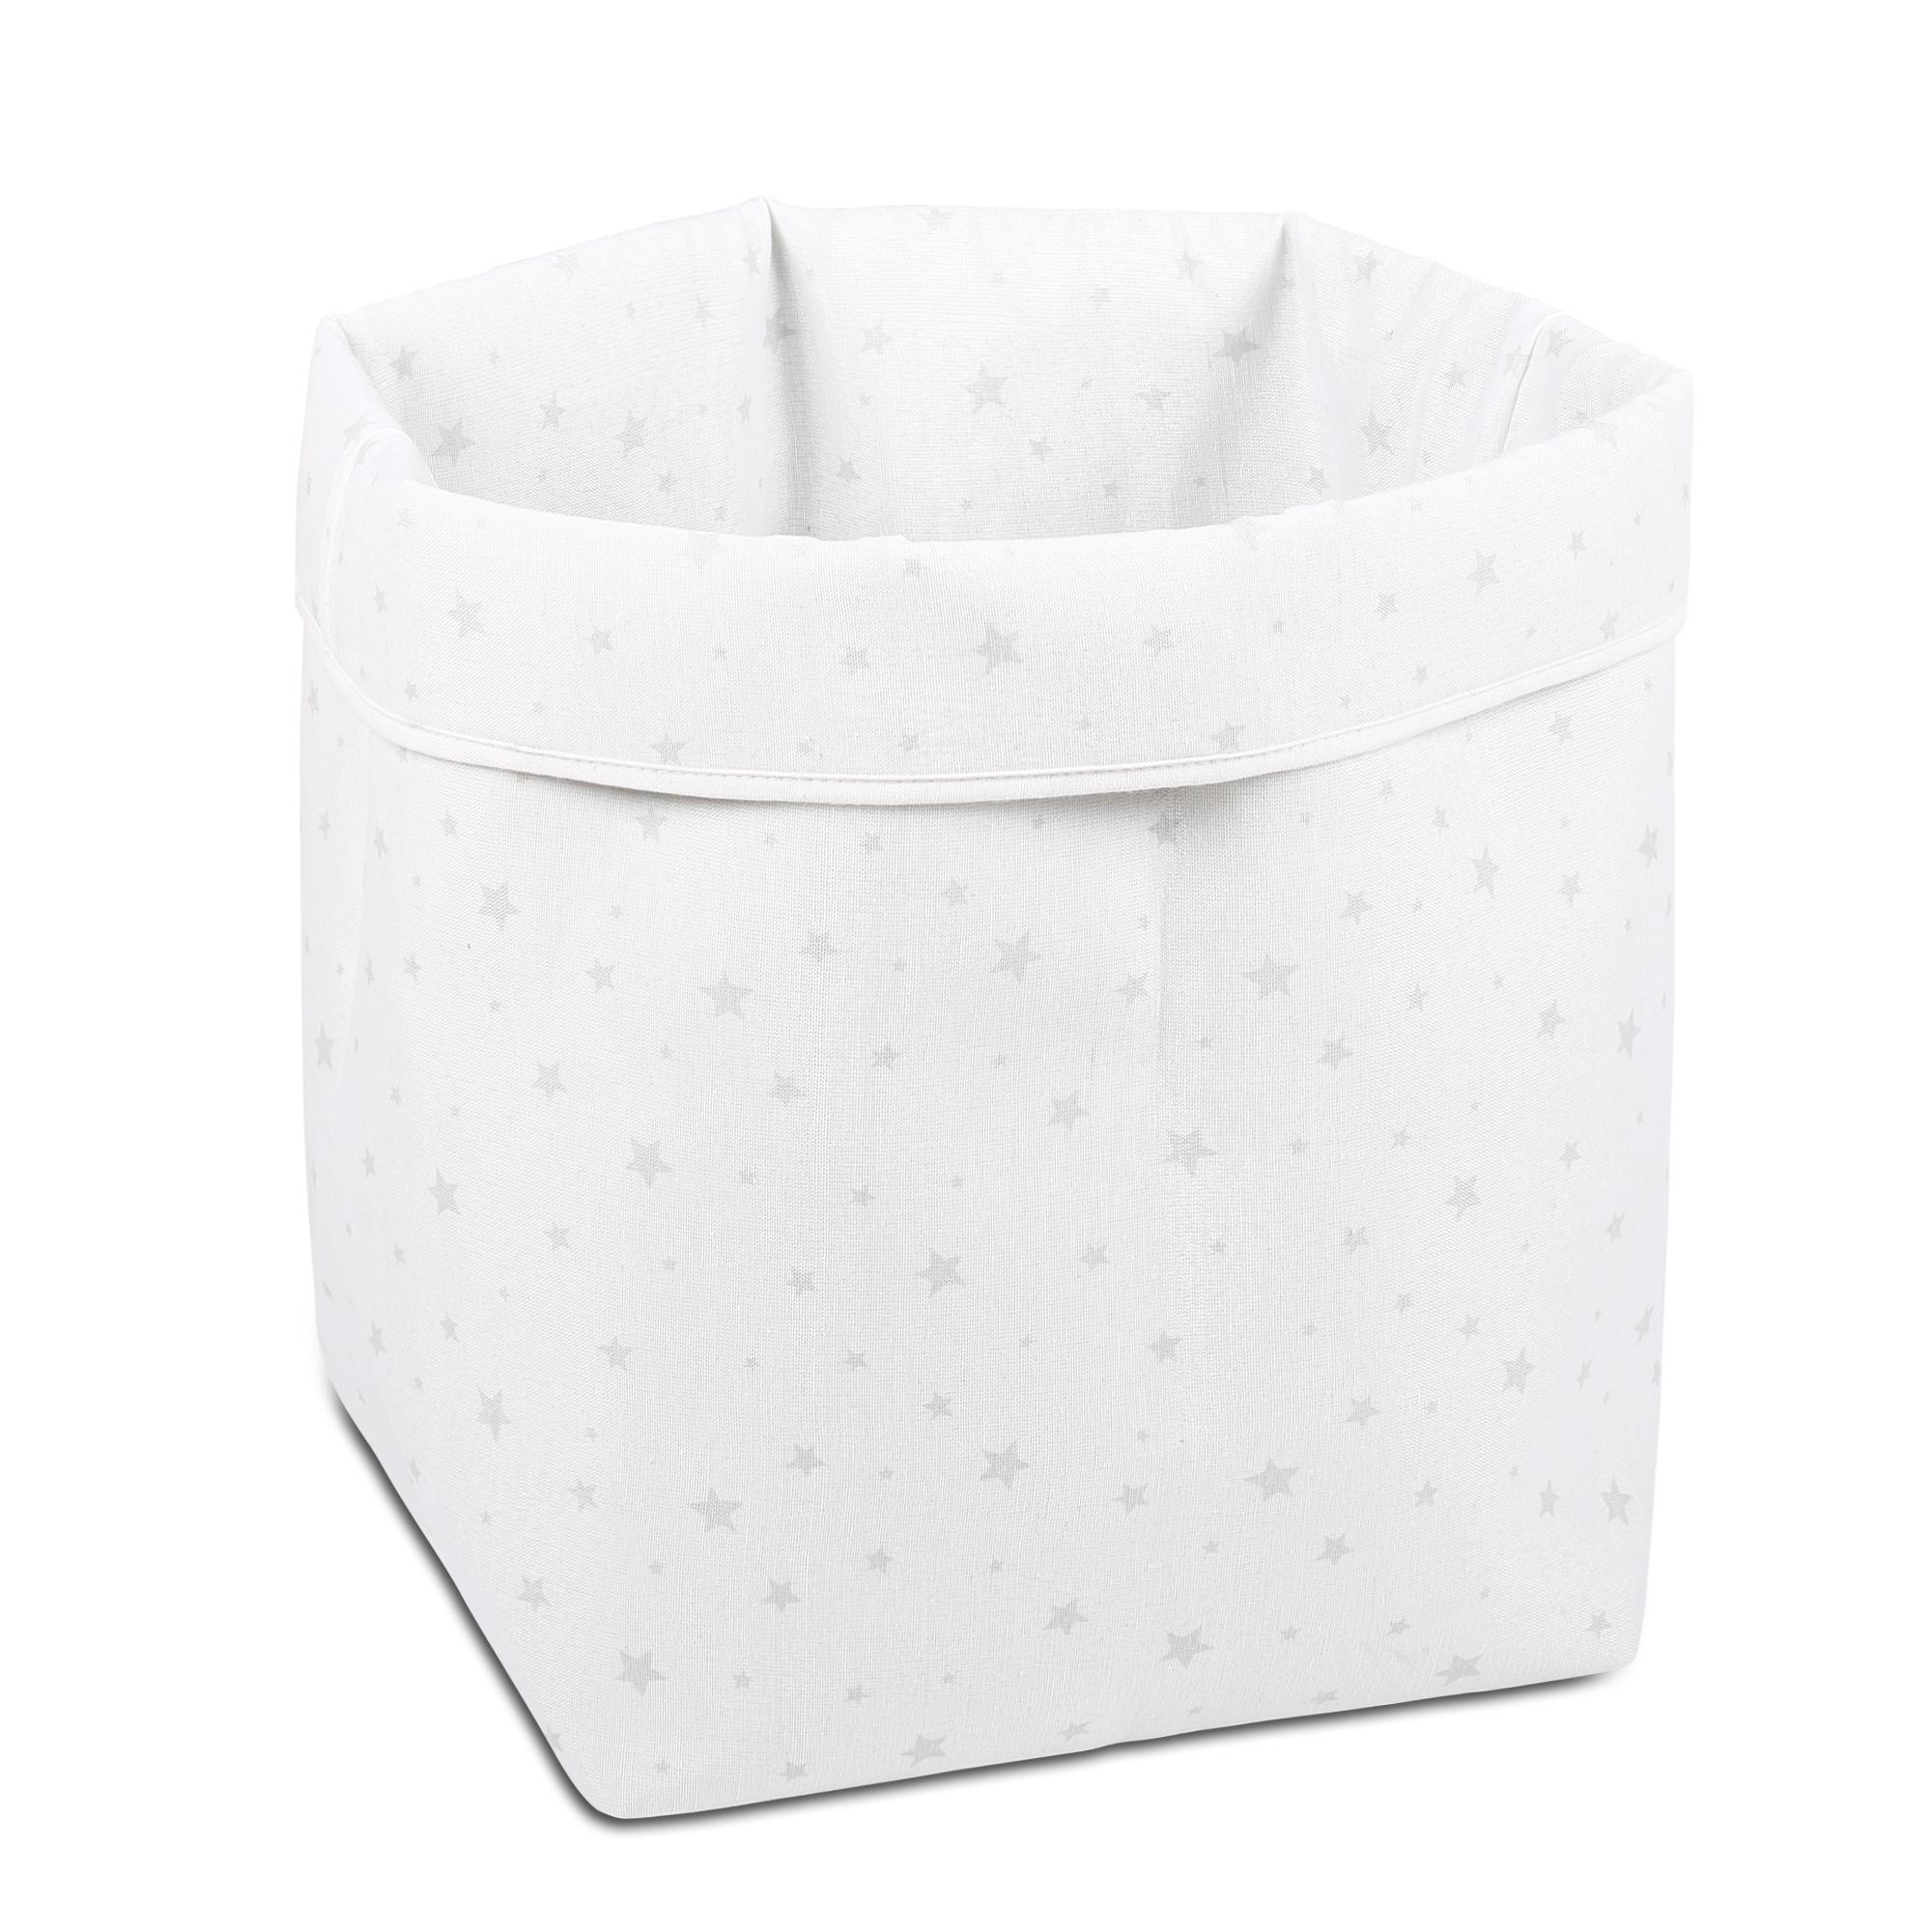 the stars large storage bin keeps large items tucked away and organized in the nursery the white and grey stars print is playful yet neutral